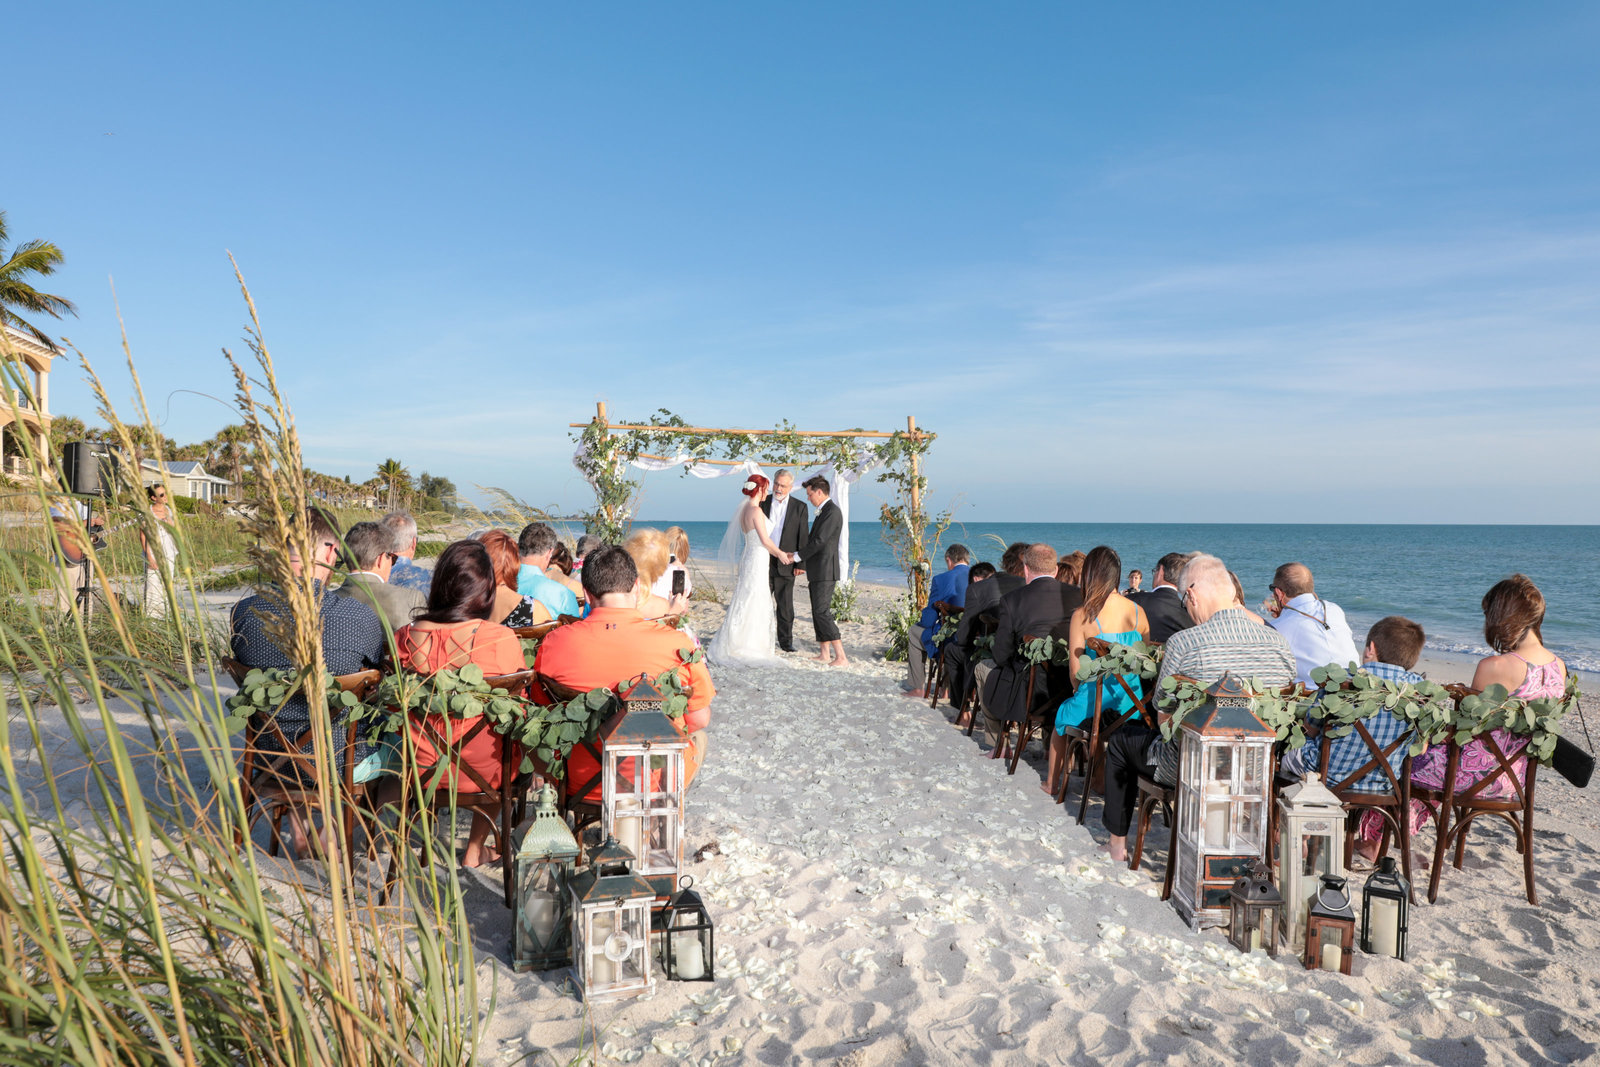 Siesta Key Wedding Photography, ceremony pictures with bride and groom under flower archway